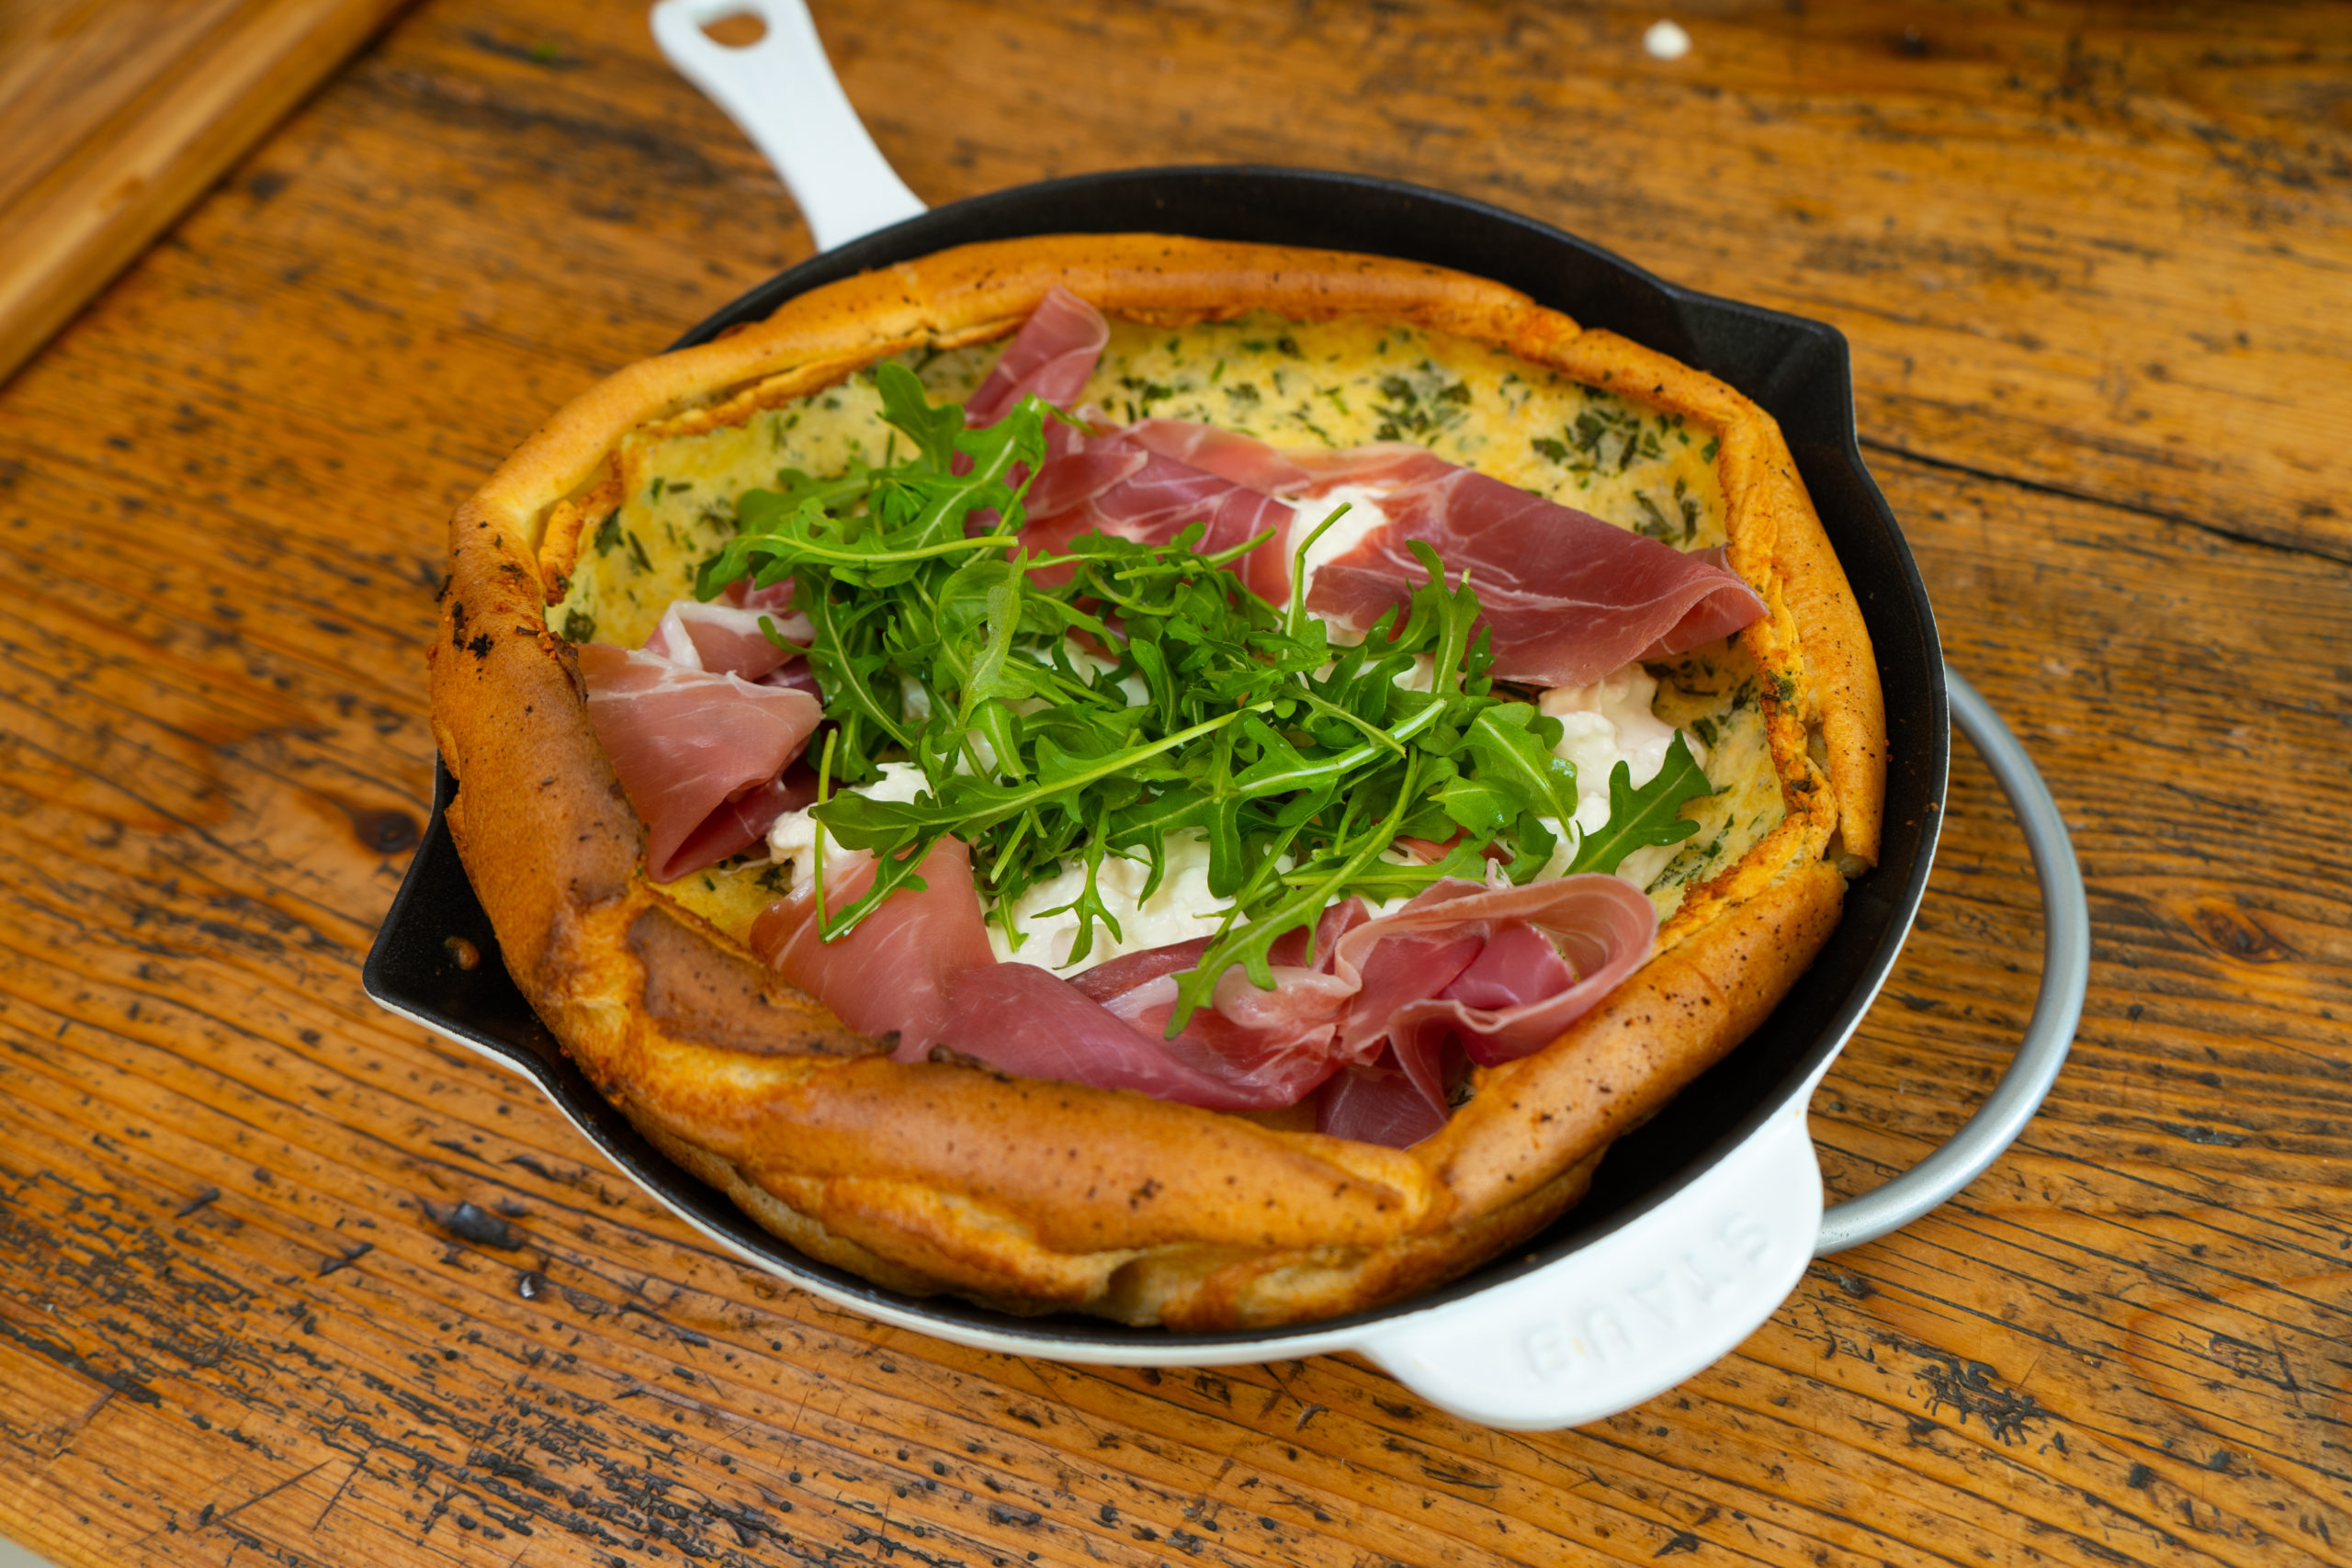 Savory Dutch pancakes